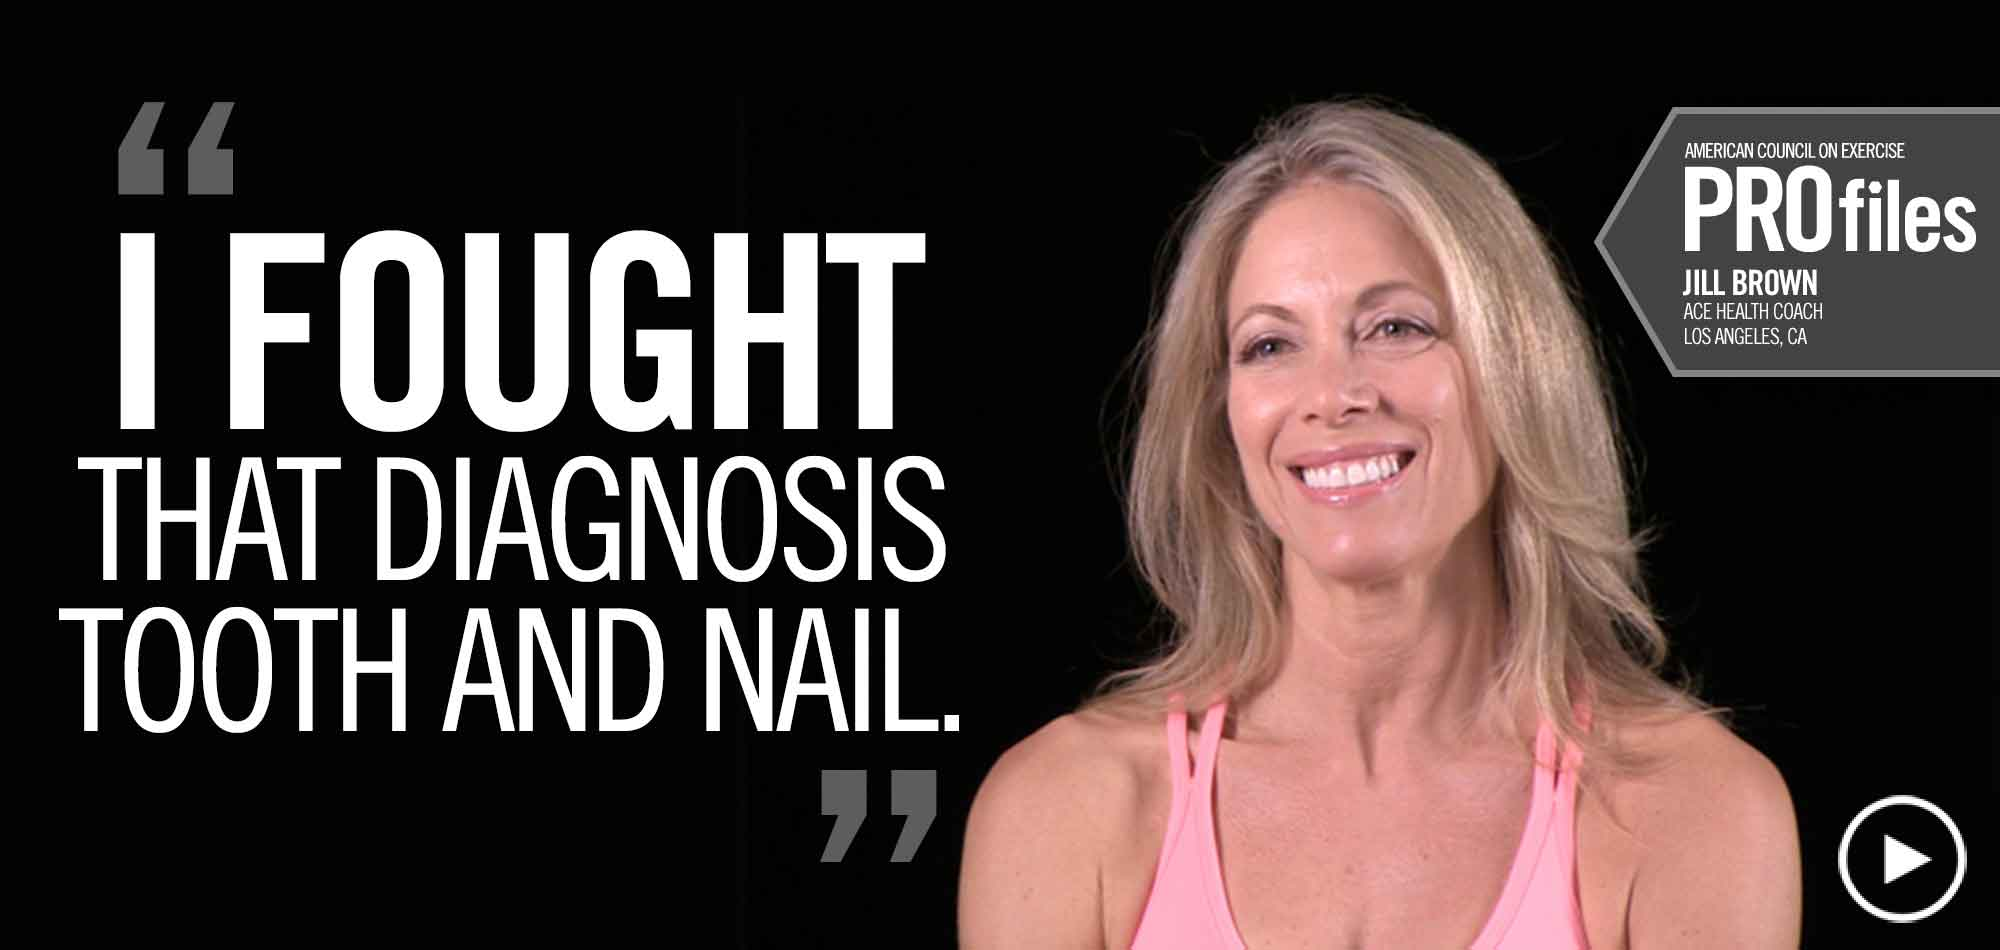 I Fought that diagnosis tooth and nail